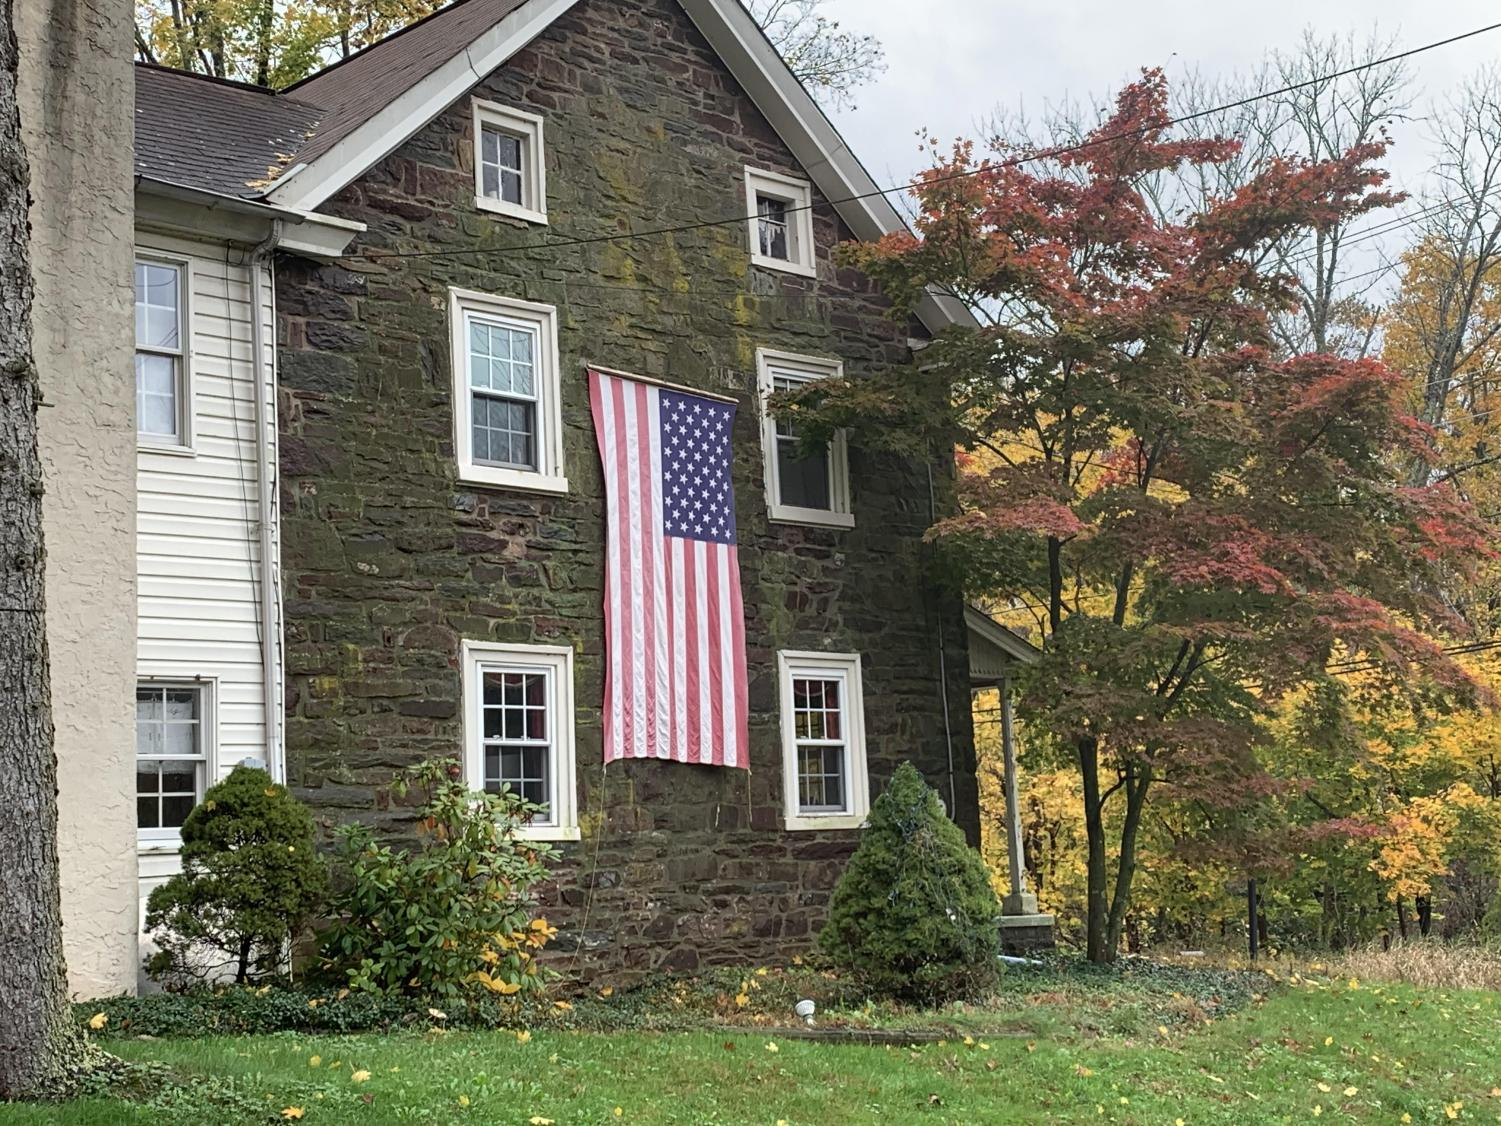 AUTUMN AMERICANA -  A home at the intersection of Old Morris Rd. and Old Forty Foot Rd. in Towamencin Township displays the American flag on October 30, 2019. If it's autumn and it's America, that means it's also election season. Tuesday, Novmeber 5th voters across the country will make choices, largely in local elections, as they exercise their civil duty and cast their votes.